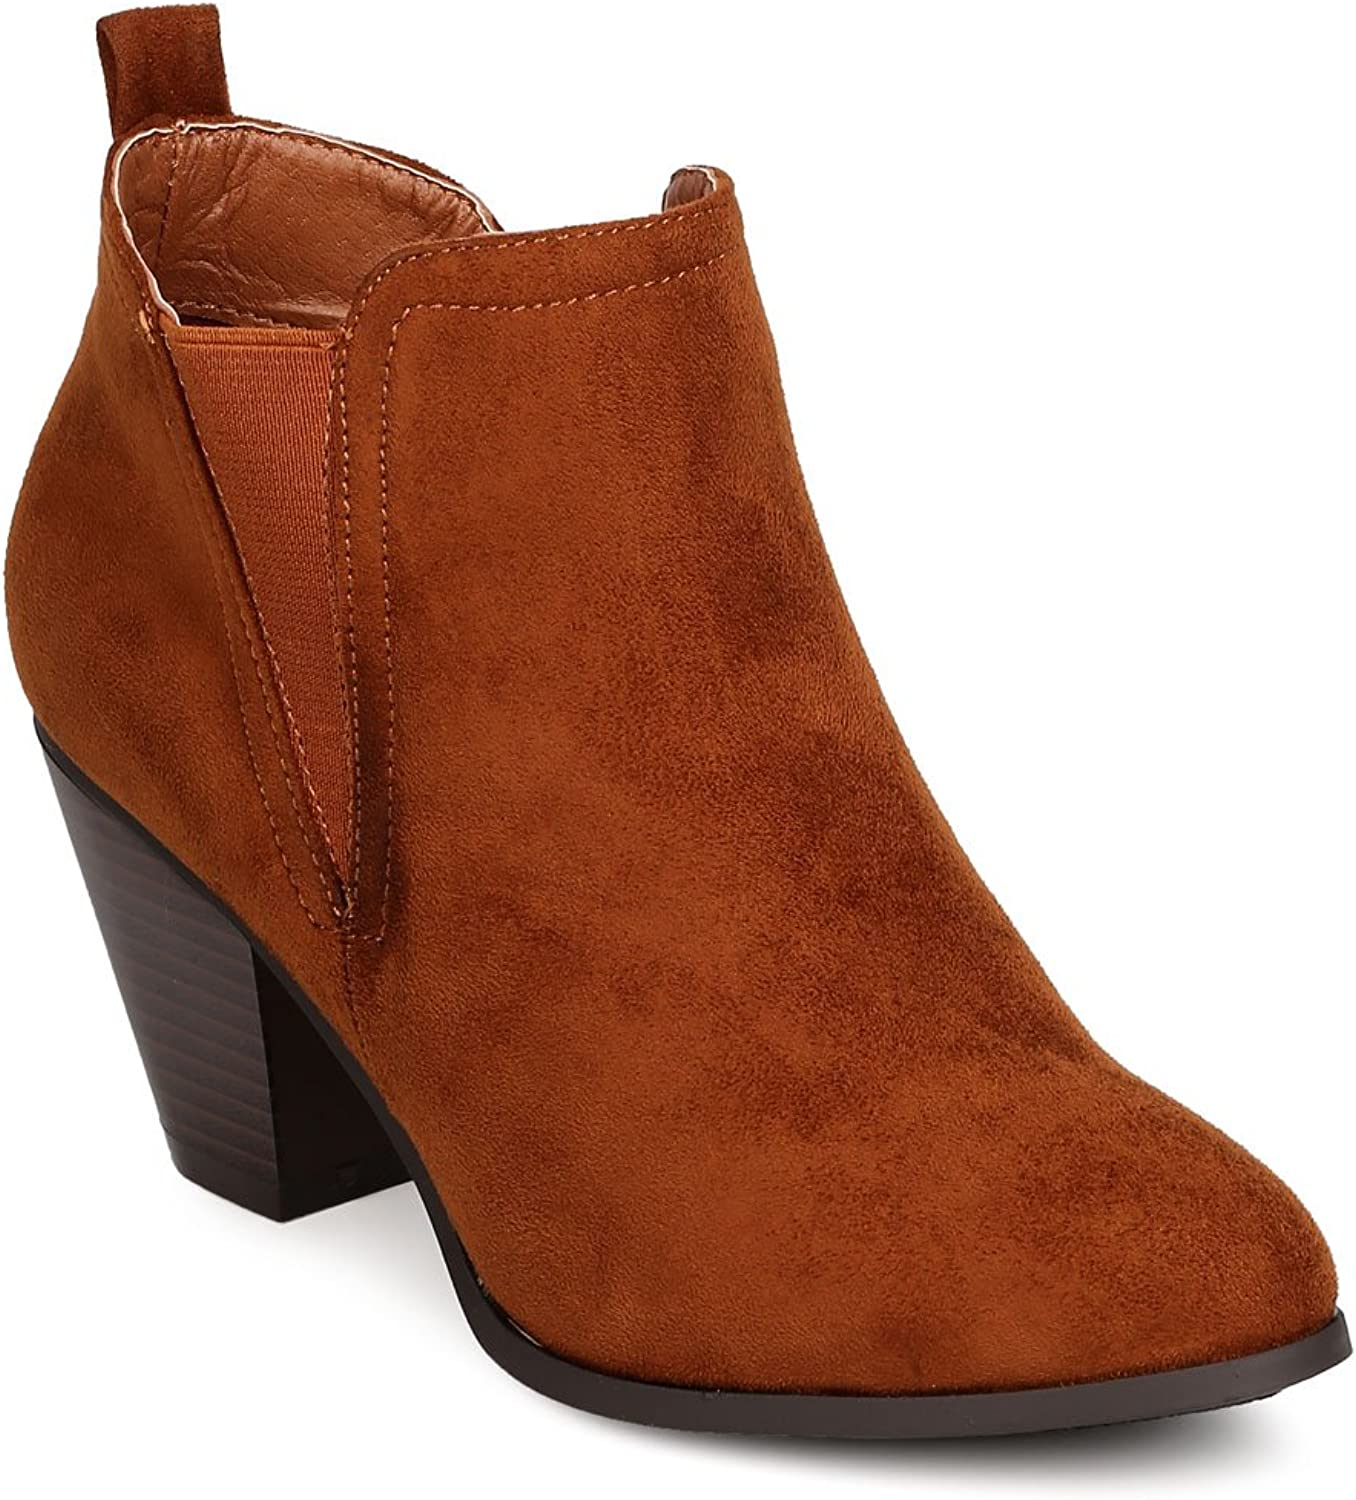 Nature Breeze Women Faux Suede Almond Toe Chelsea Chunky Heel Bootie FE22 - Tan